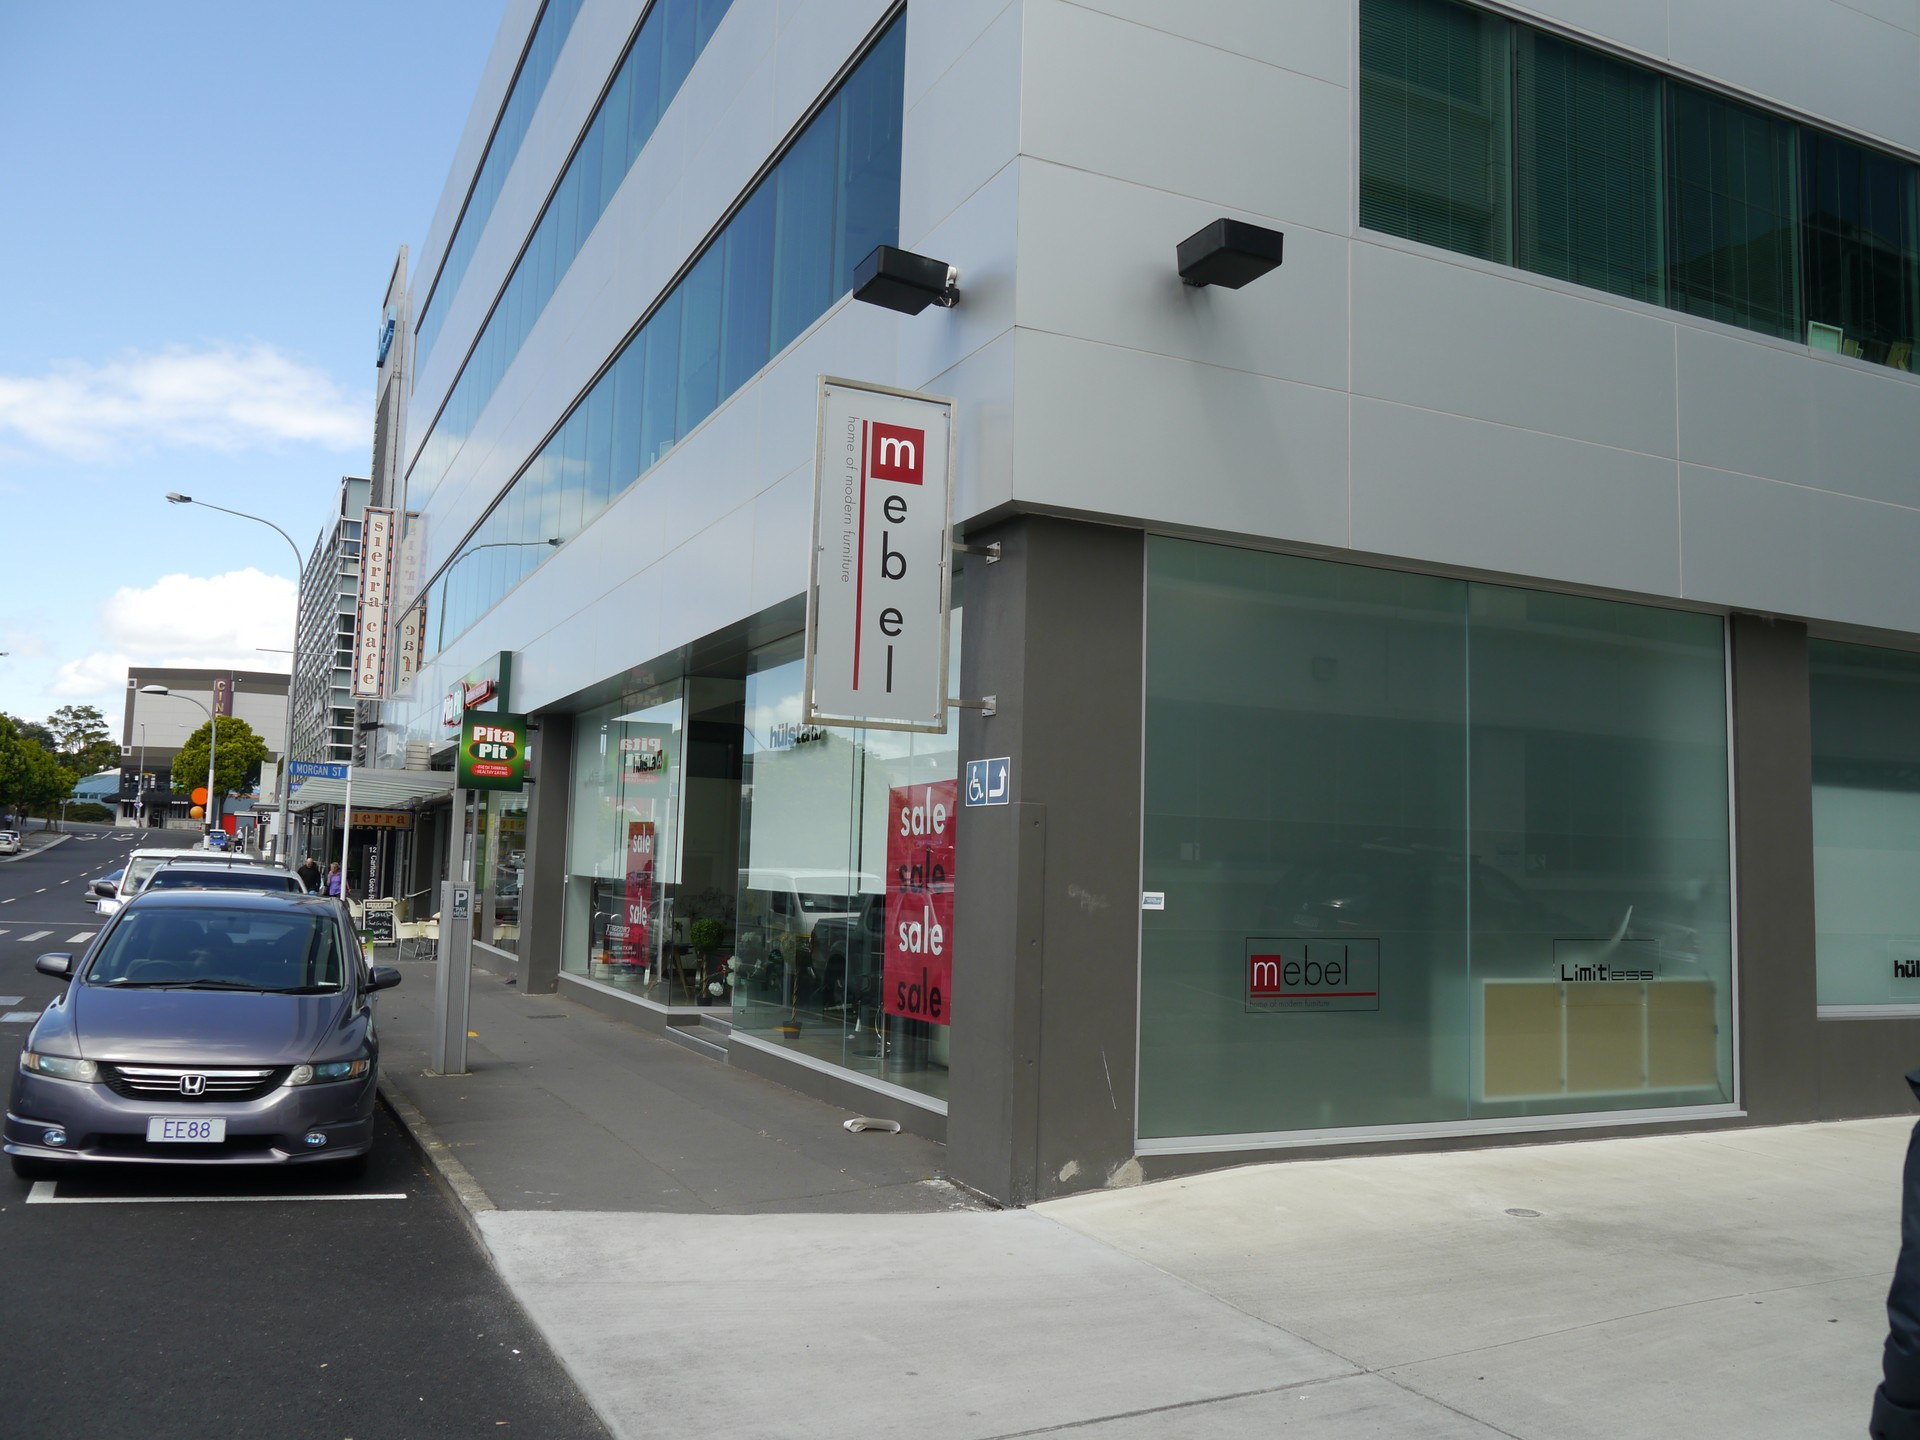 Retail  for Lease Newmarket Auckland